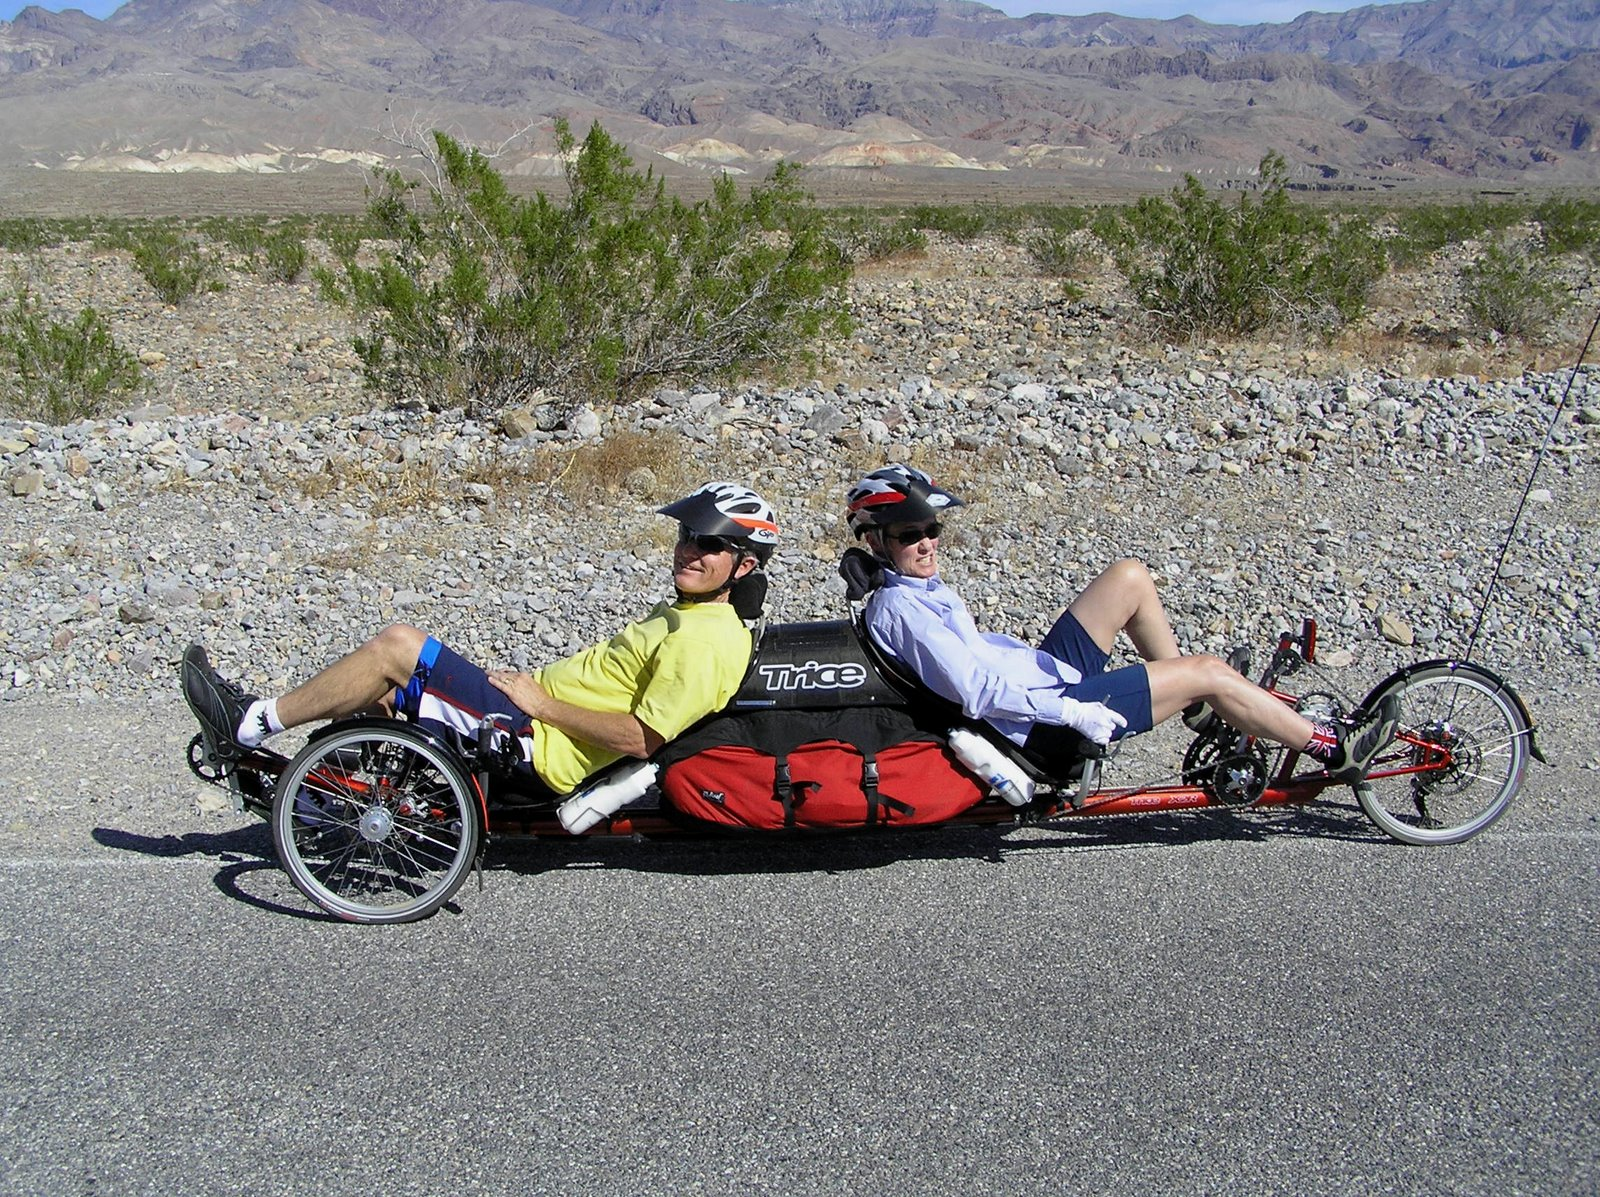 Back-to-back recumbent tandem trike